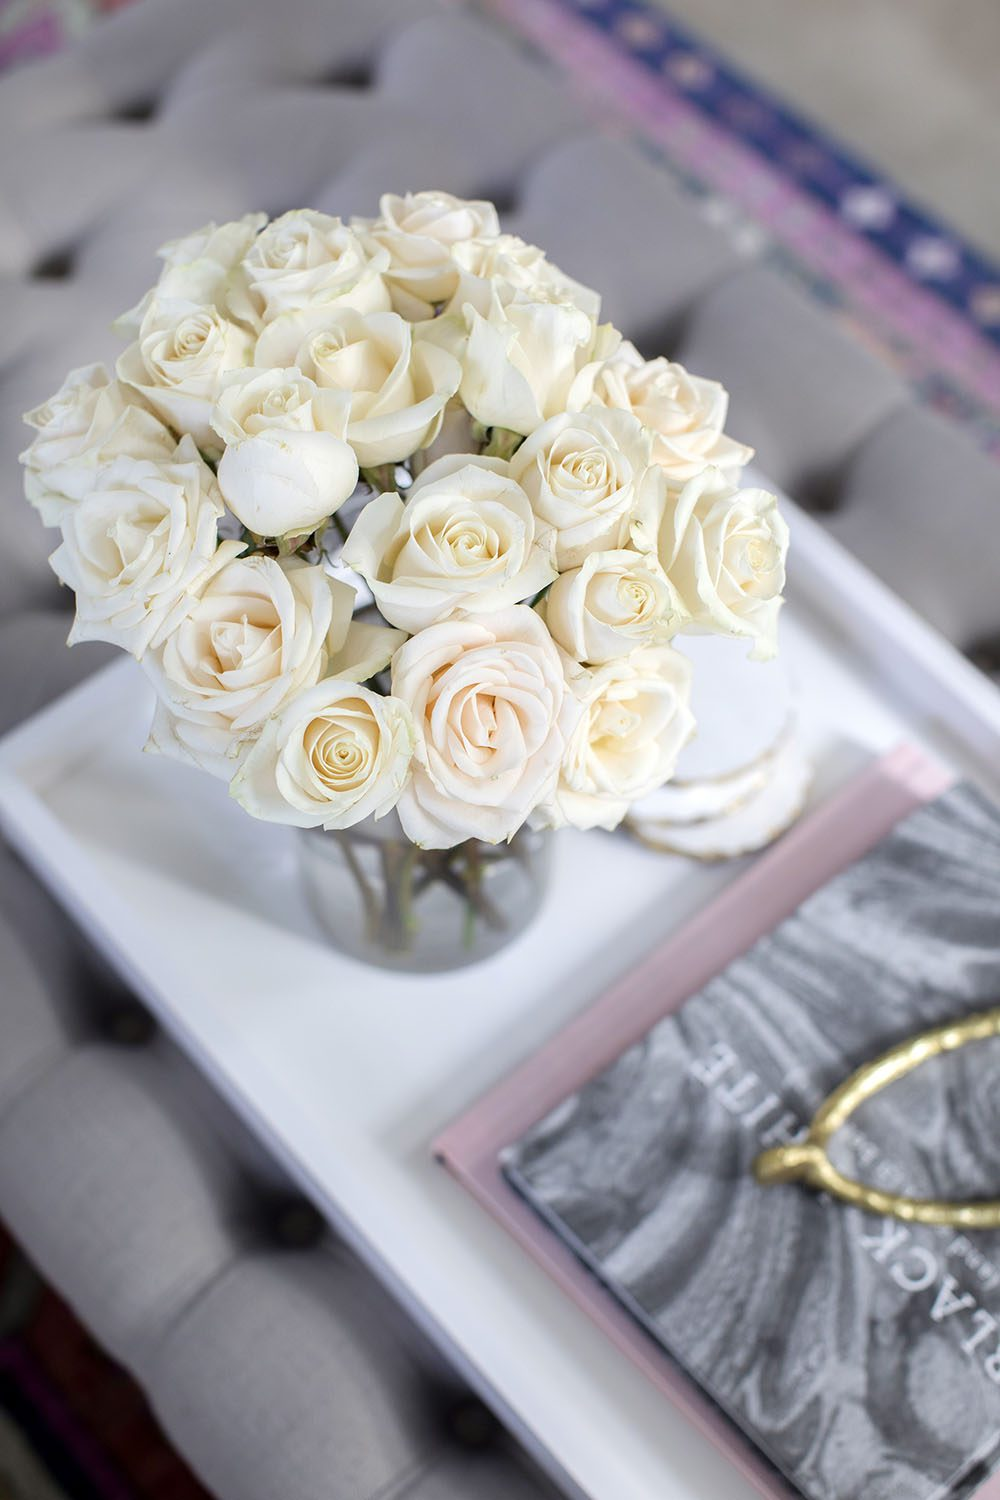 roses-from-wayfair-shoot